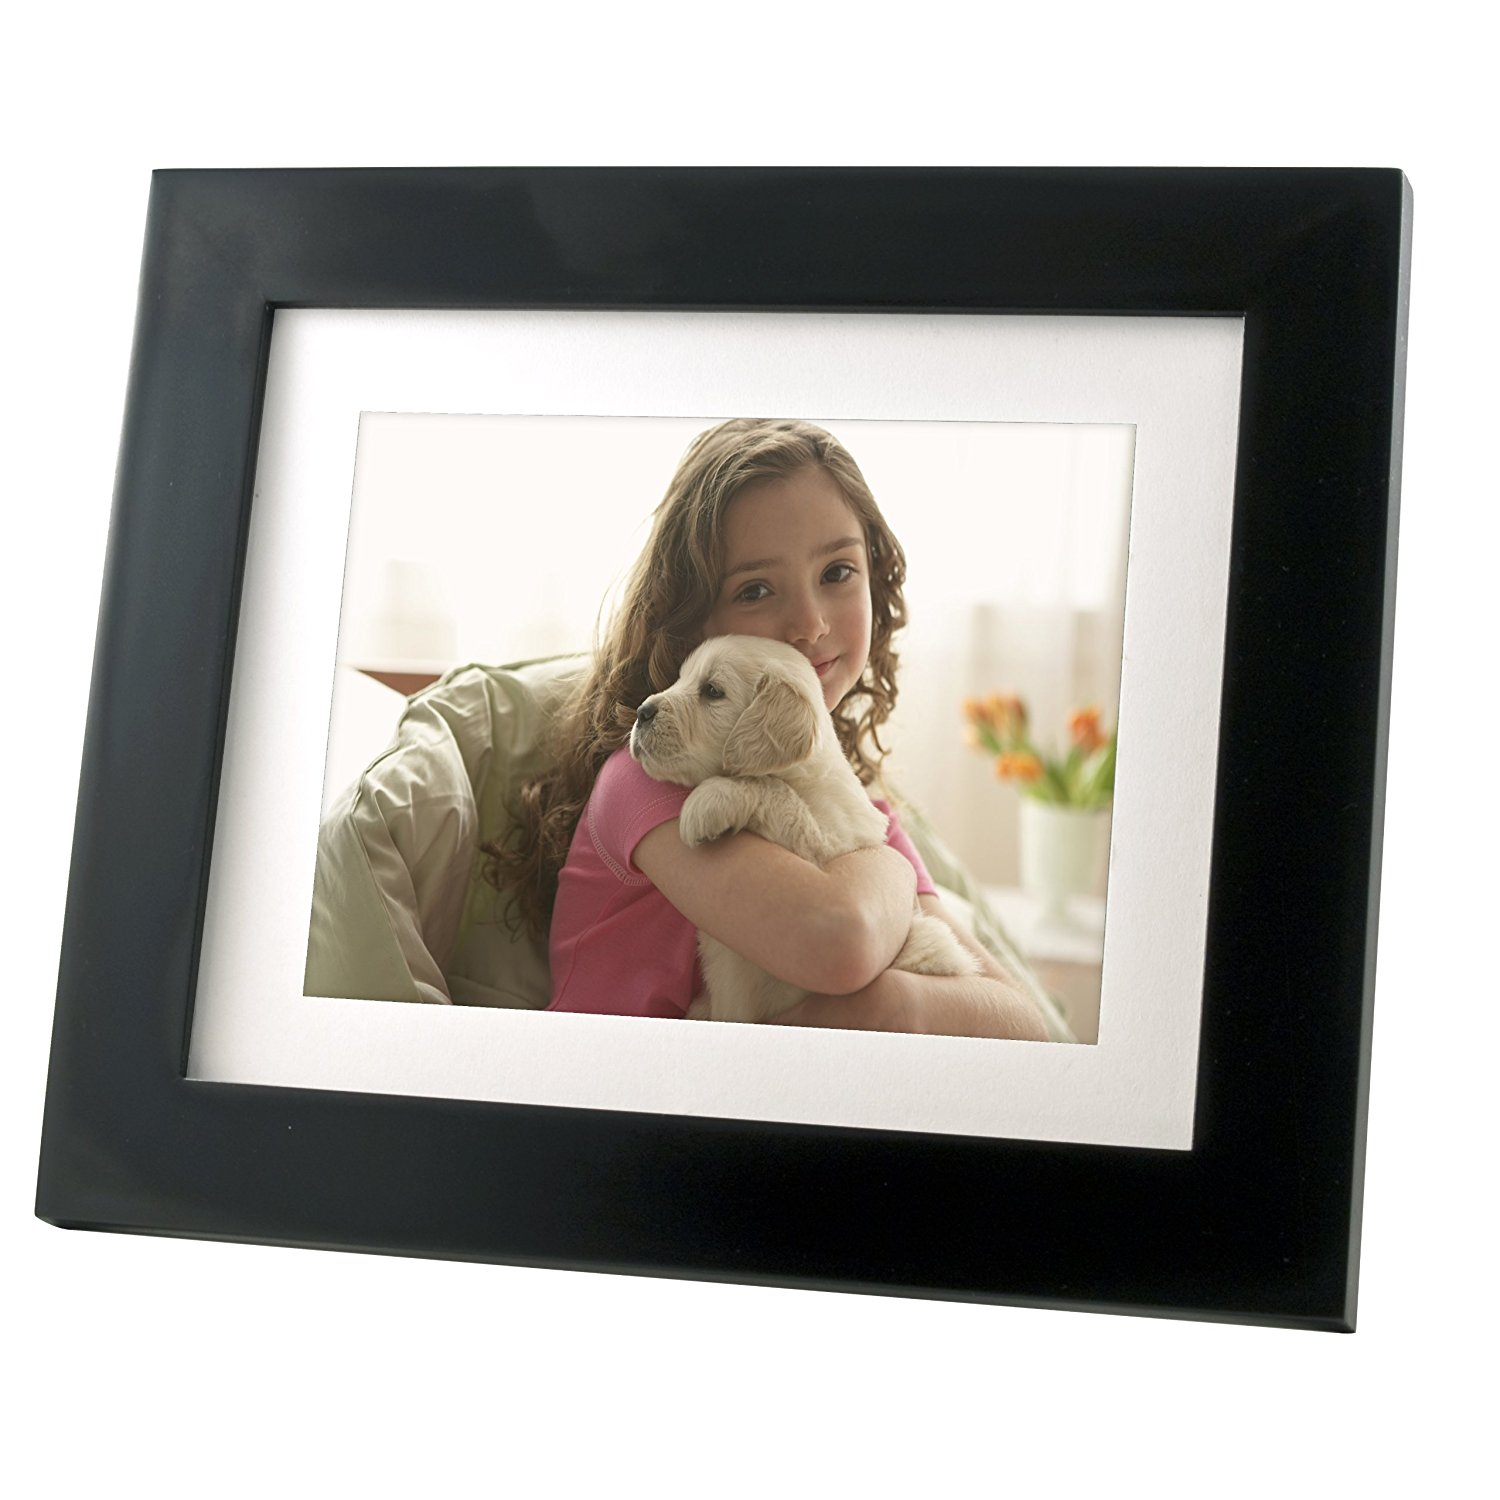 Buy Philips Spf3482 8 Inch Digital Photo Frame 43 200 Cdm2